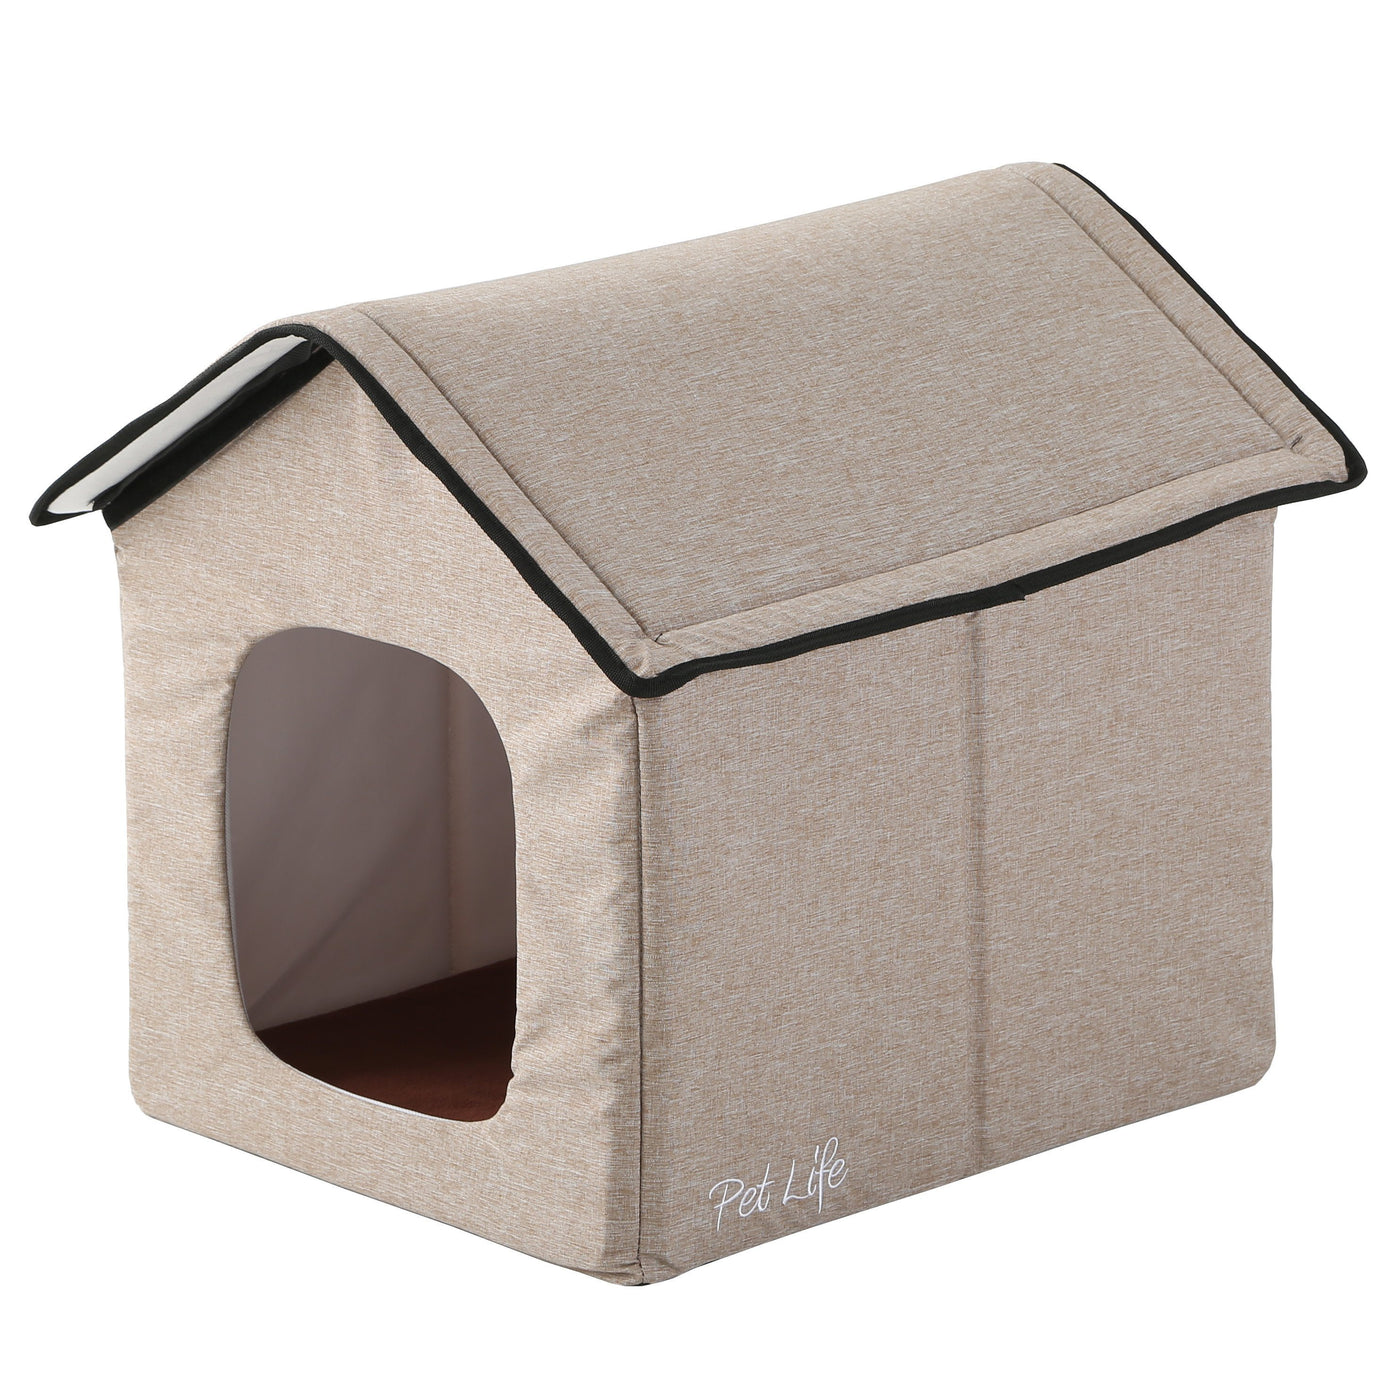 Smart collapsible pet house